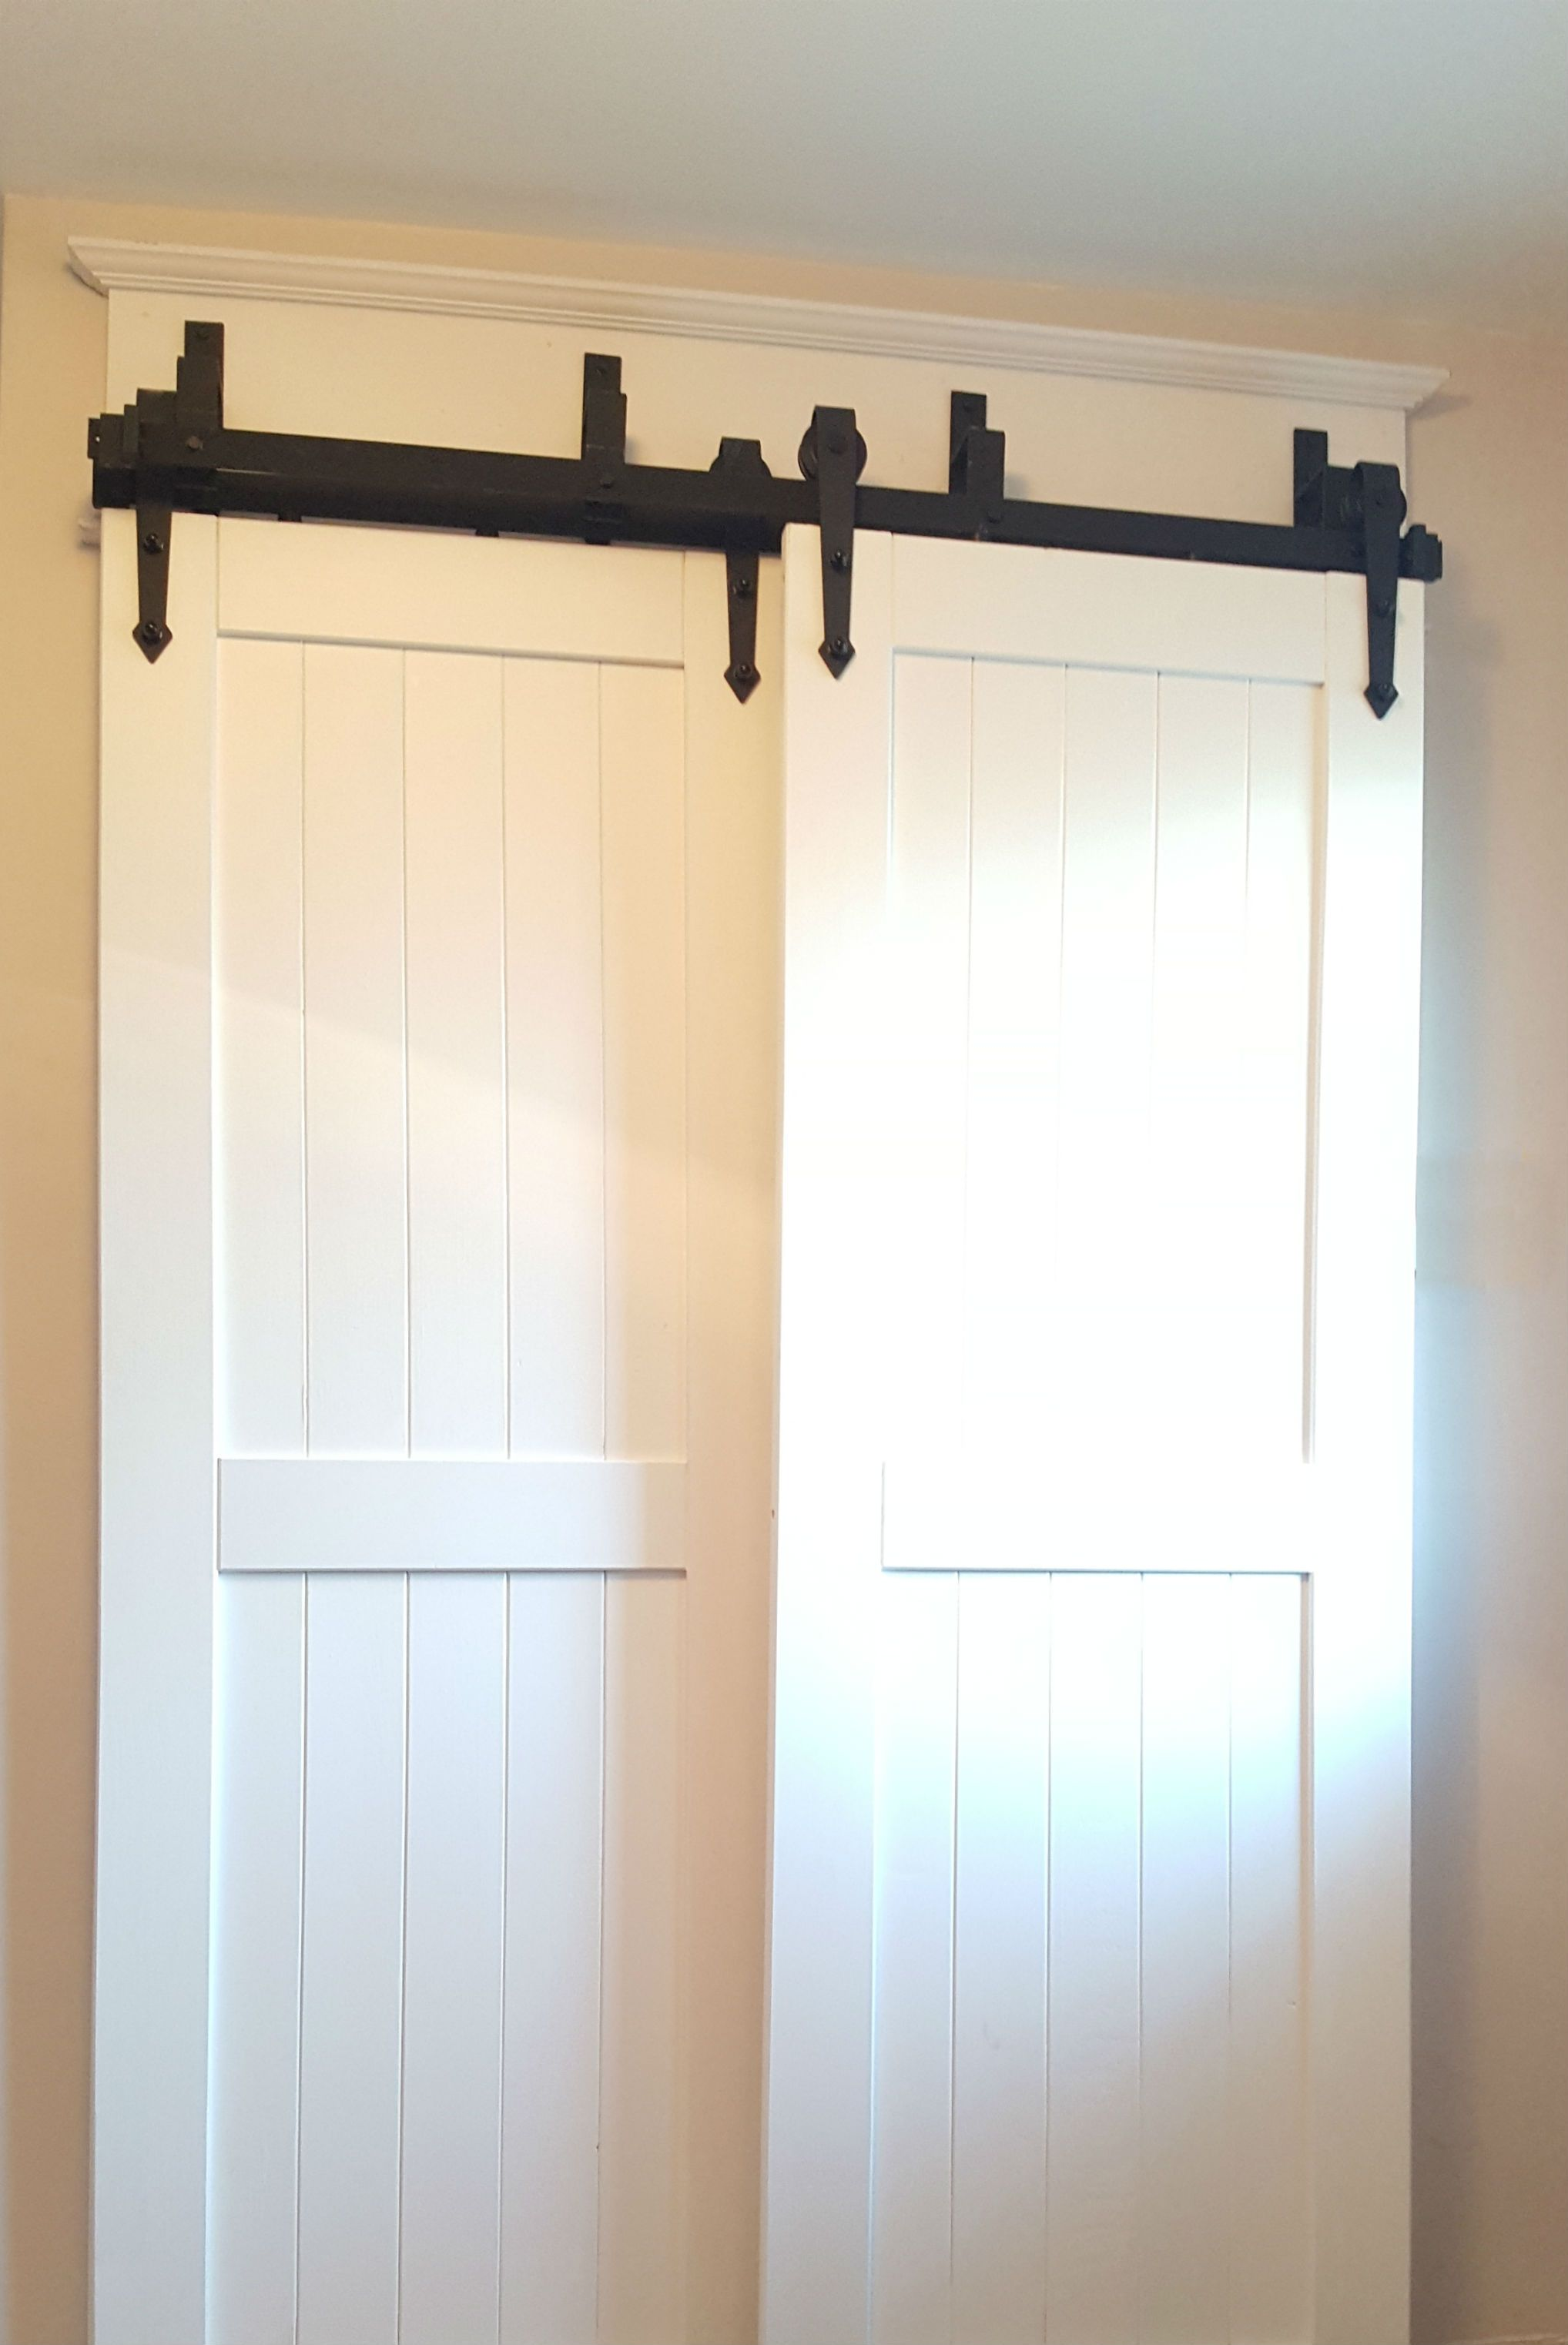 Bypass barn door hardware easy to install canada \u2026 | Pinteres\u2026